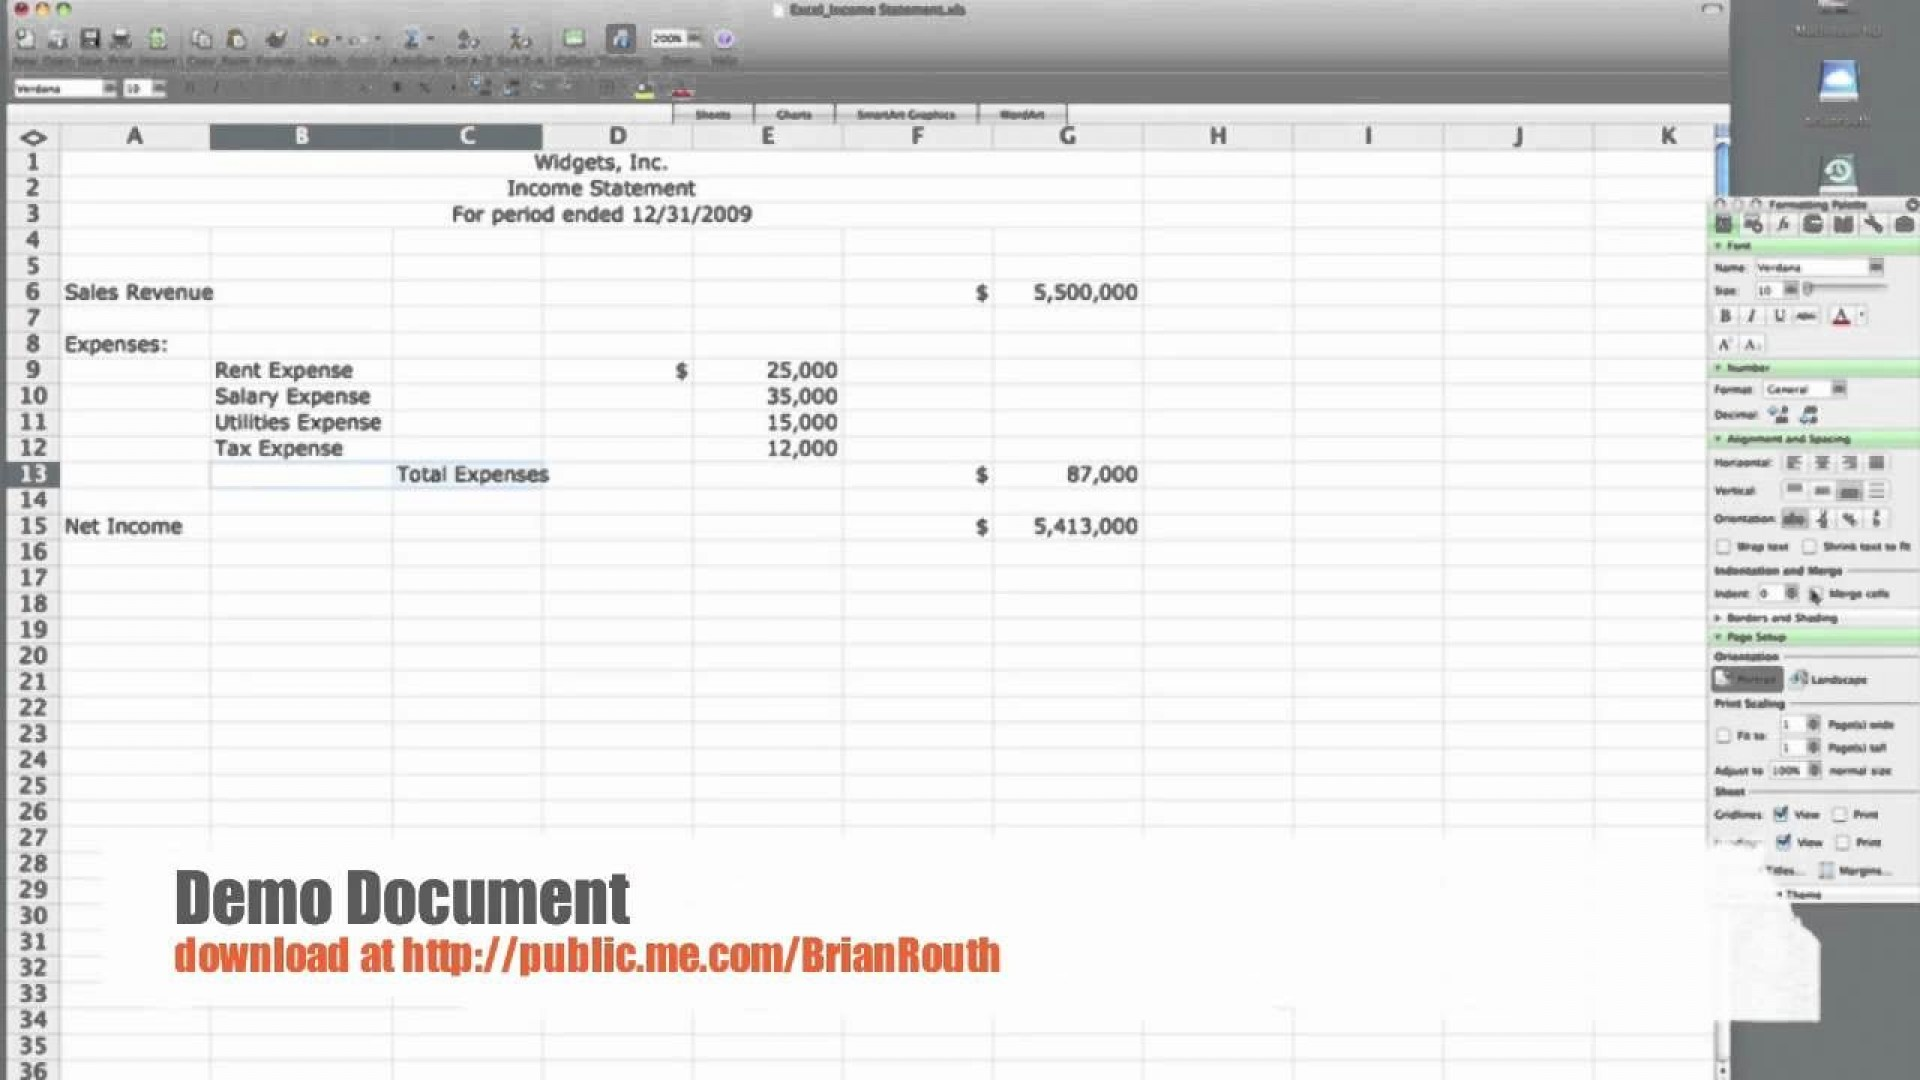 004 Awful Income Statement Format In Excel With Formula Concept 1920